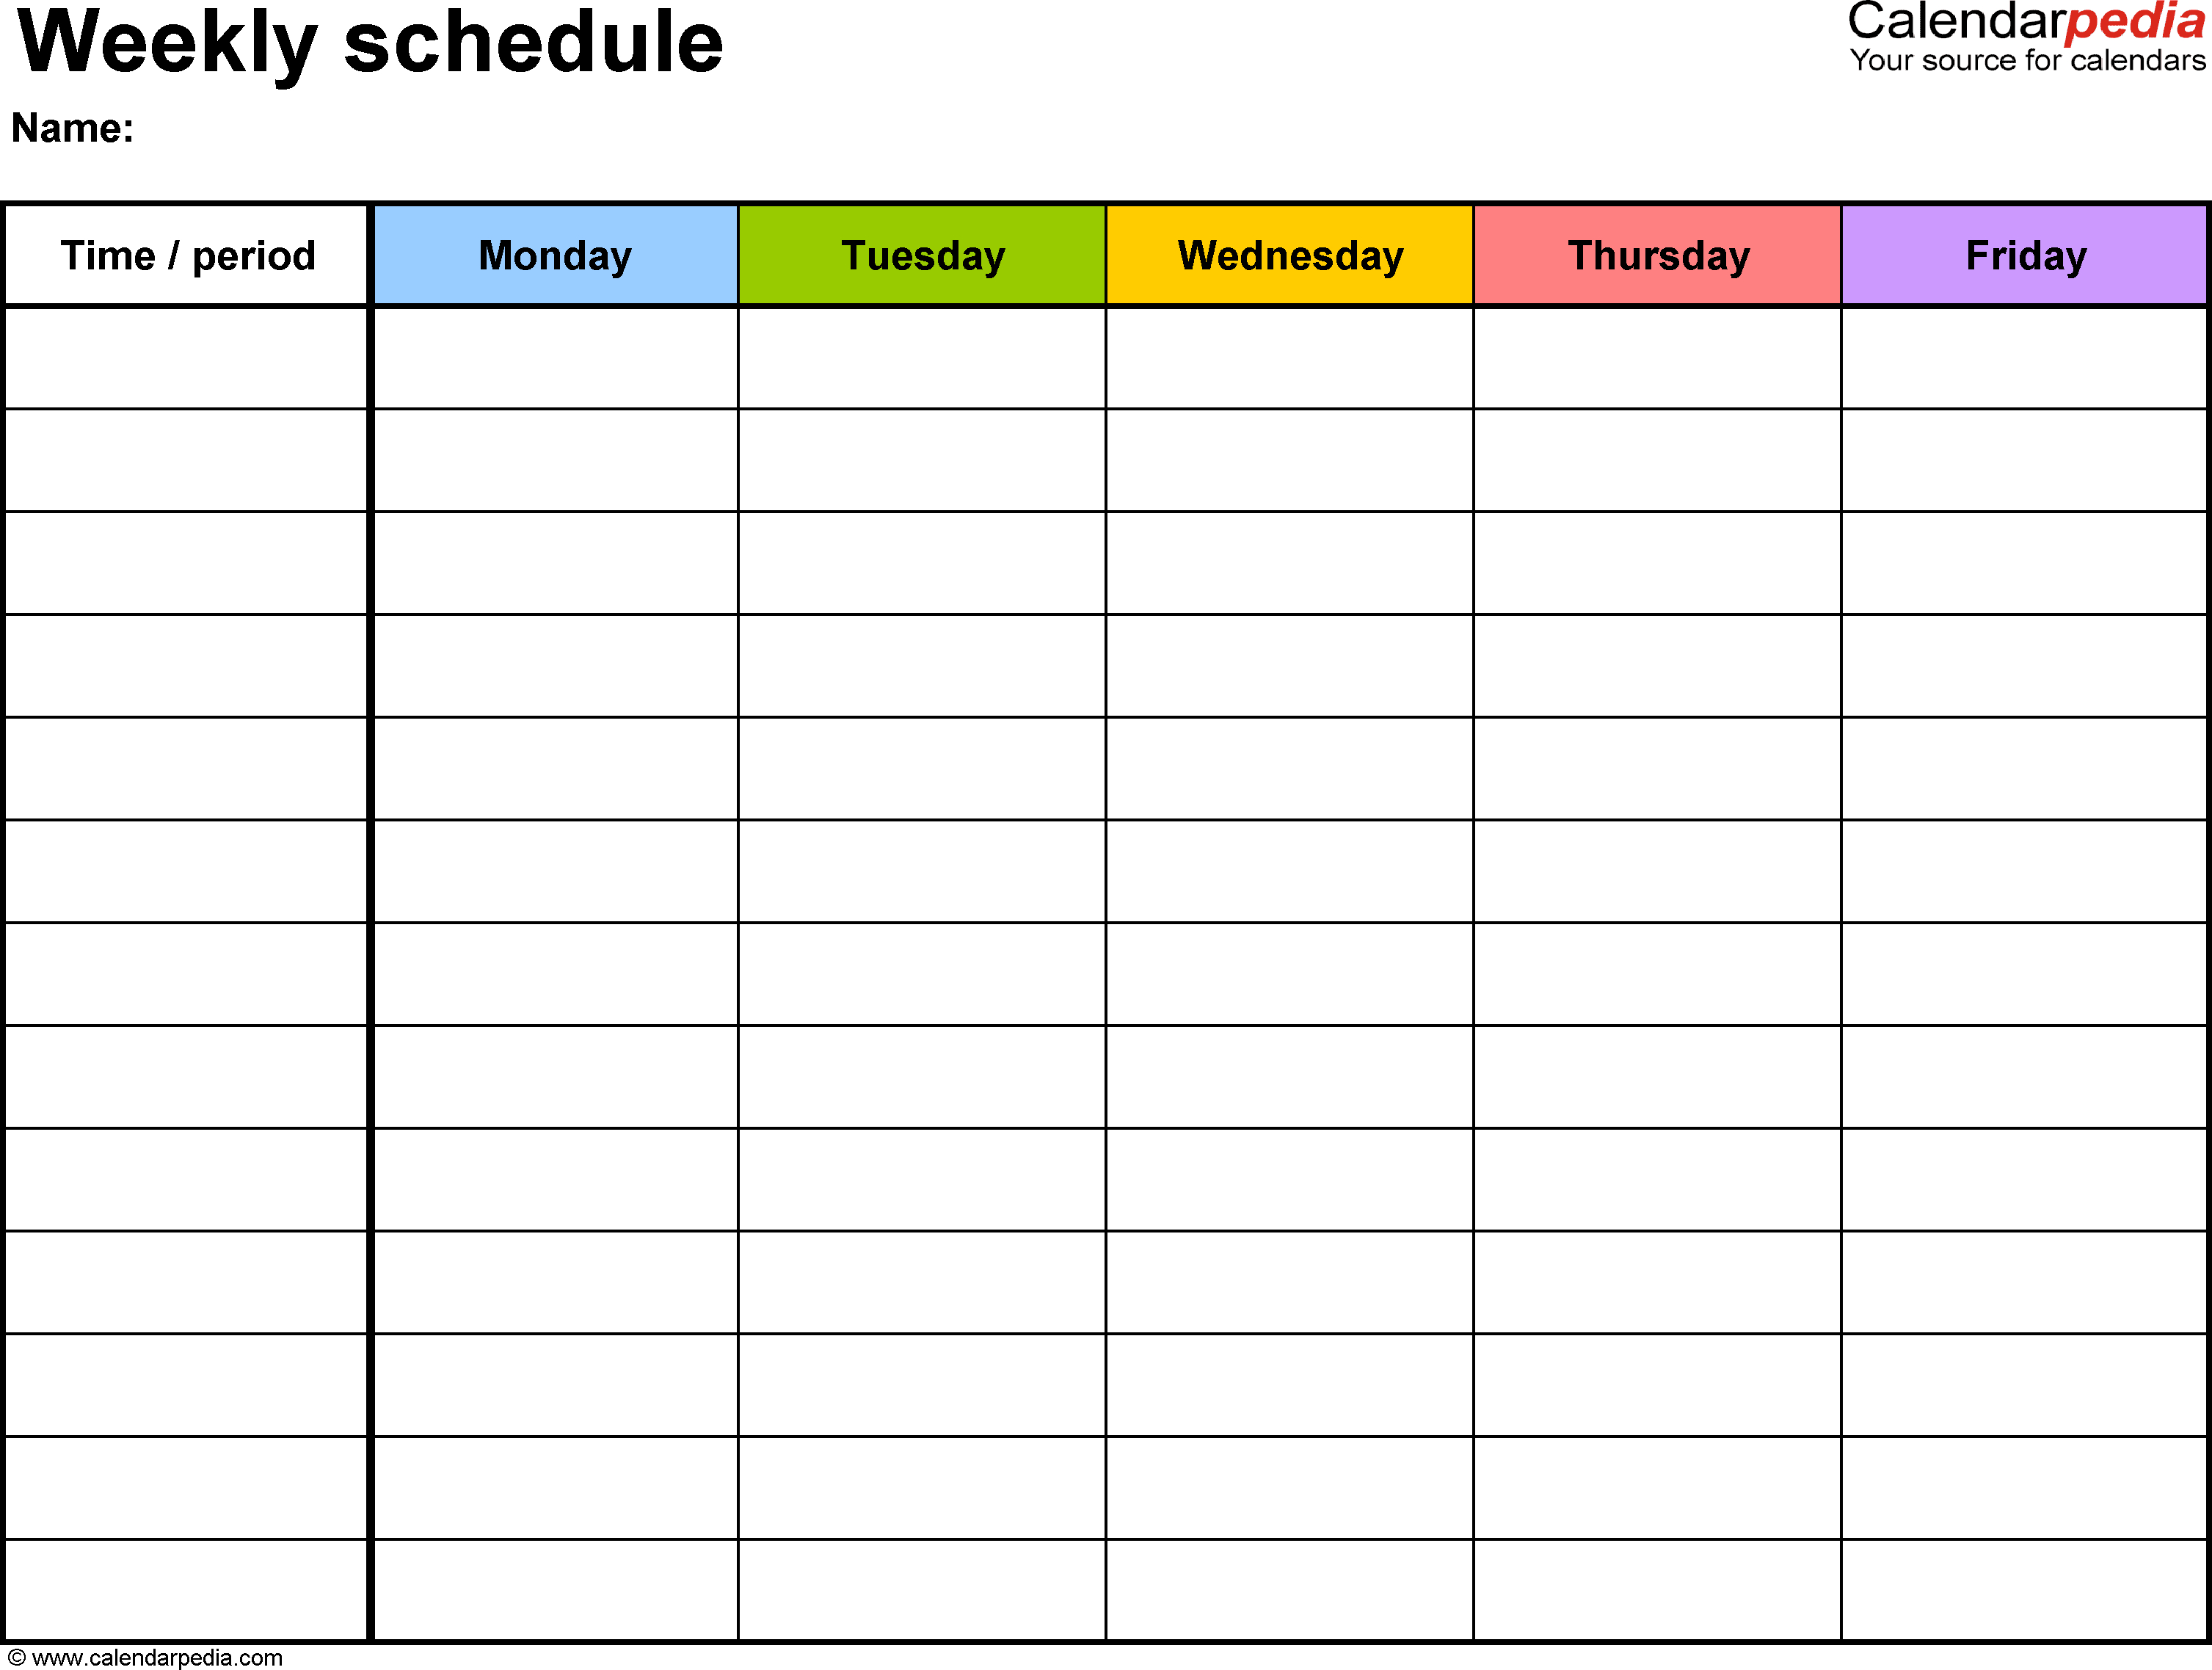 Free Weekly Schedule Templates For Pdf - 18 Templates - Free Printable Weekly Planner